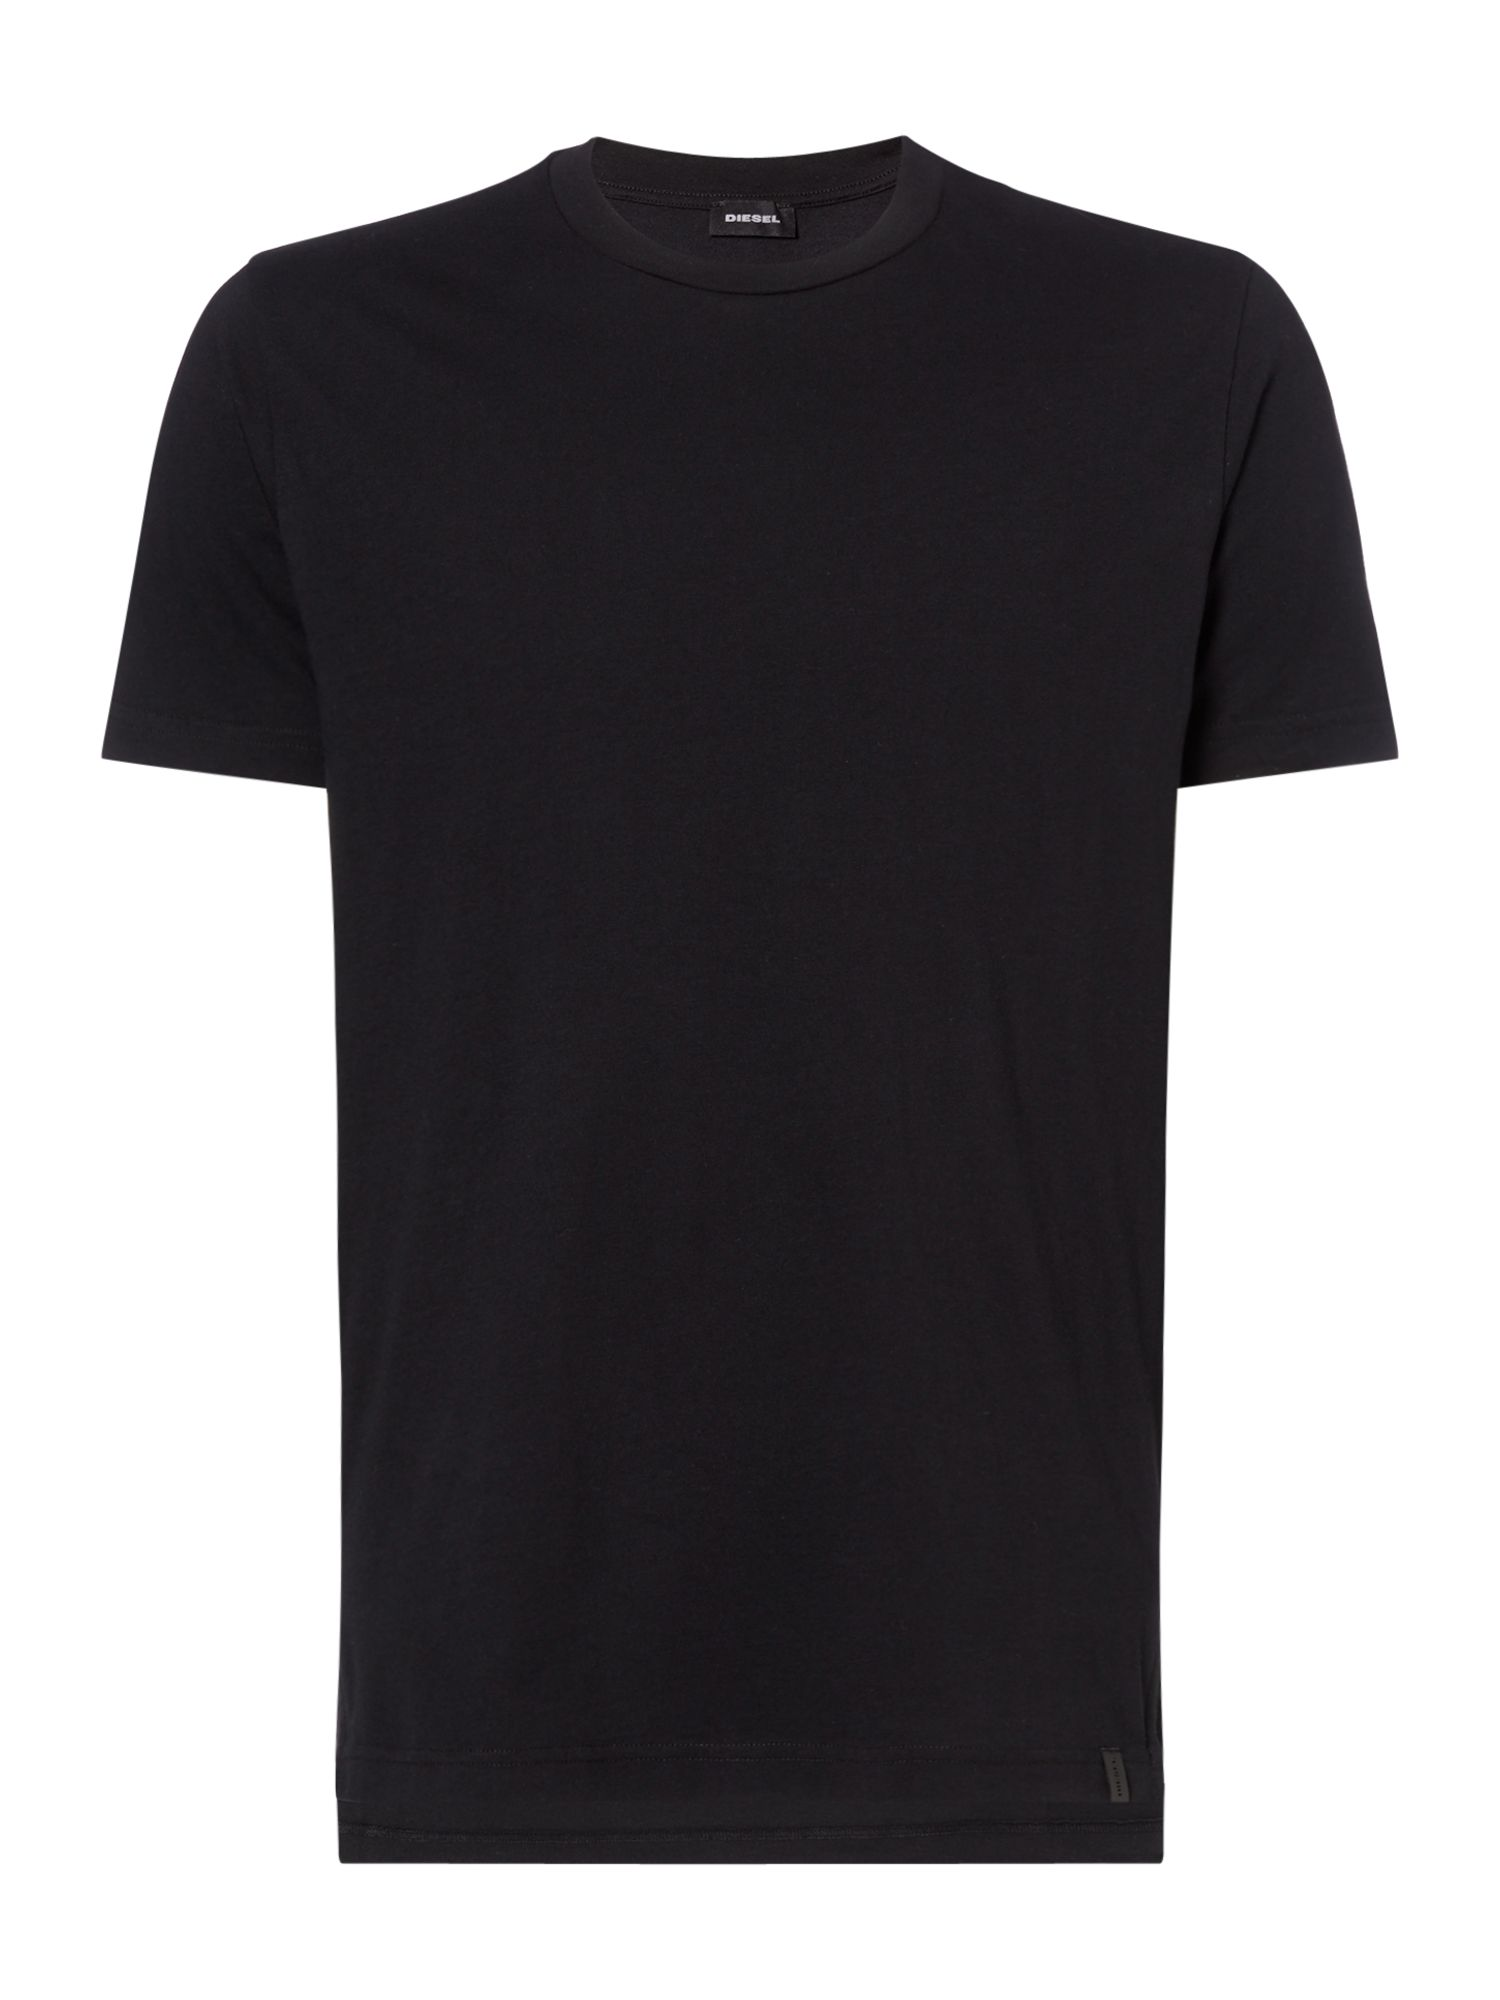 Men's Diesel Plain Crew Neck Tshirt, Black